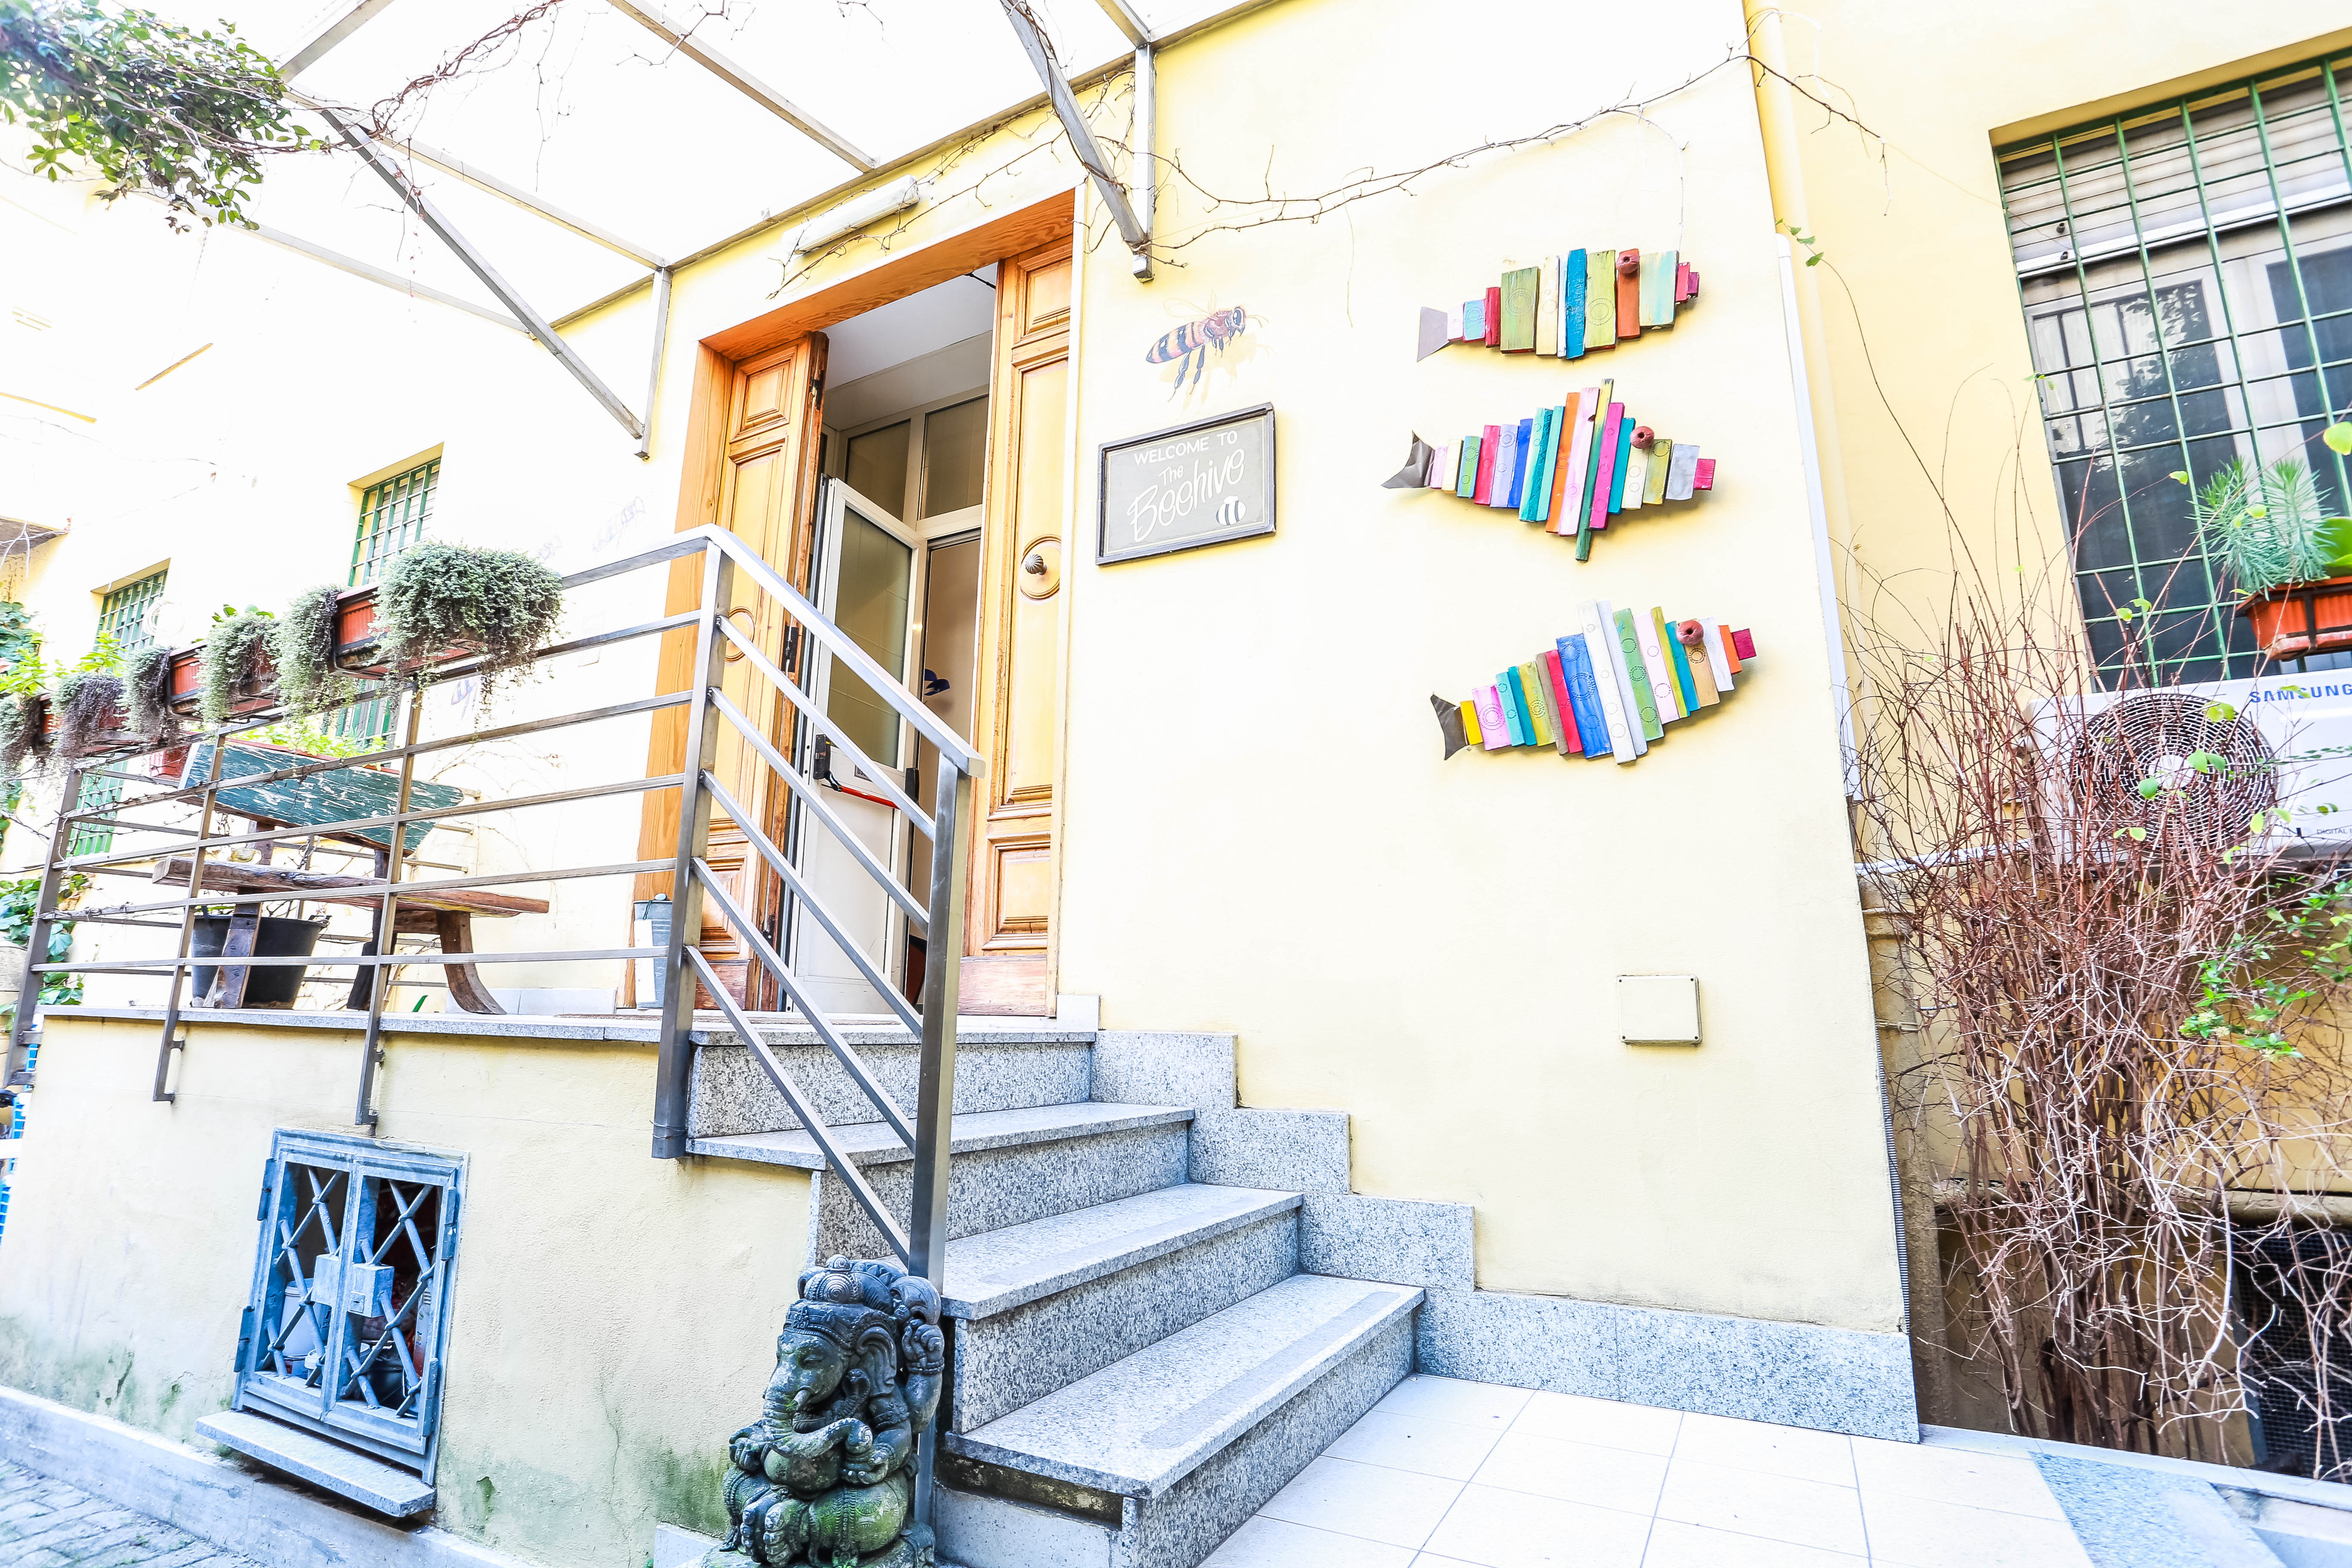 Living In Rome And Doing Business In Italy With Linda Of The Beehive Hostel, The Entrance